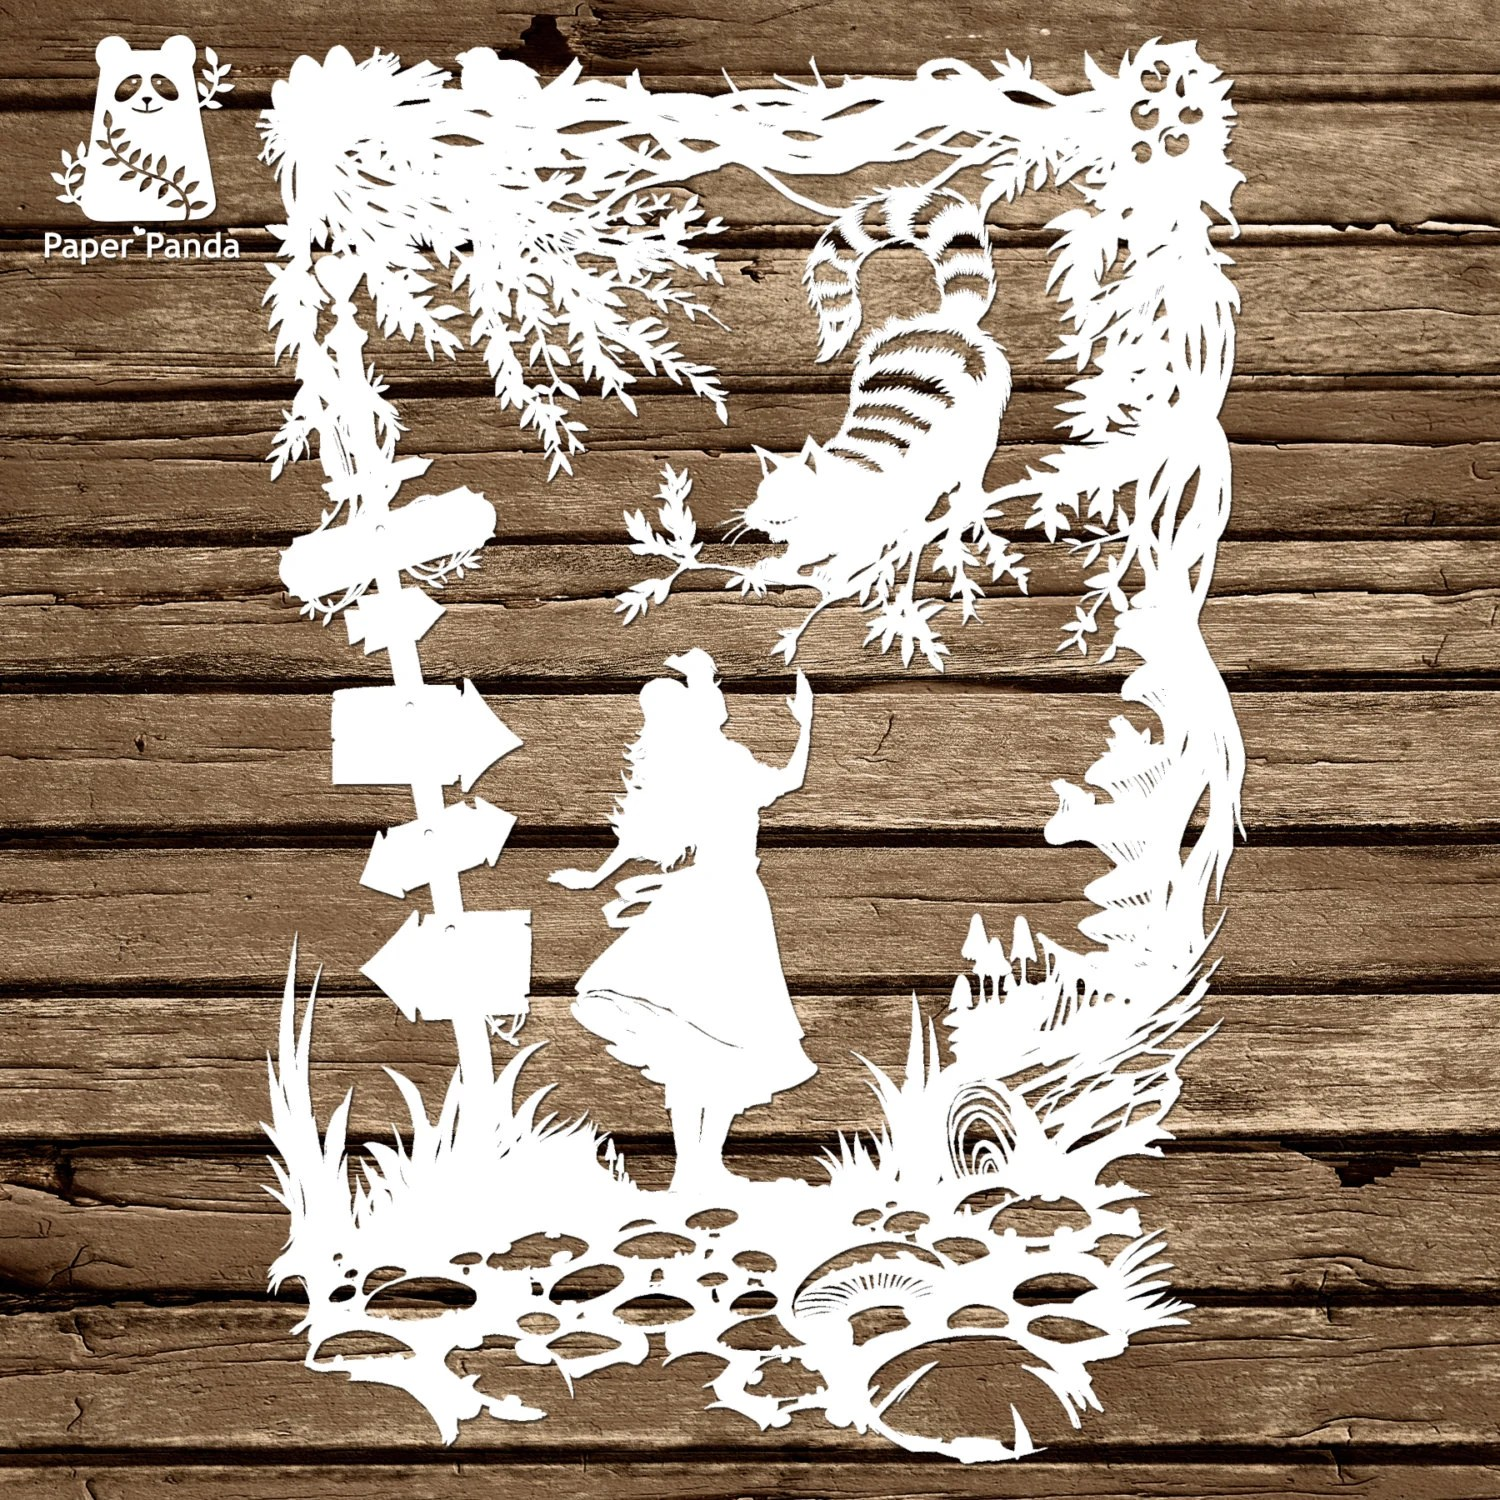 PAPER PANDA Papercut DIY Design Template u0027Cheshire - commercial purchase agreements